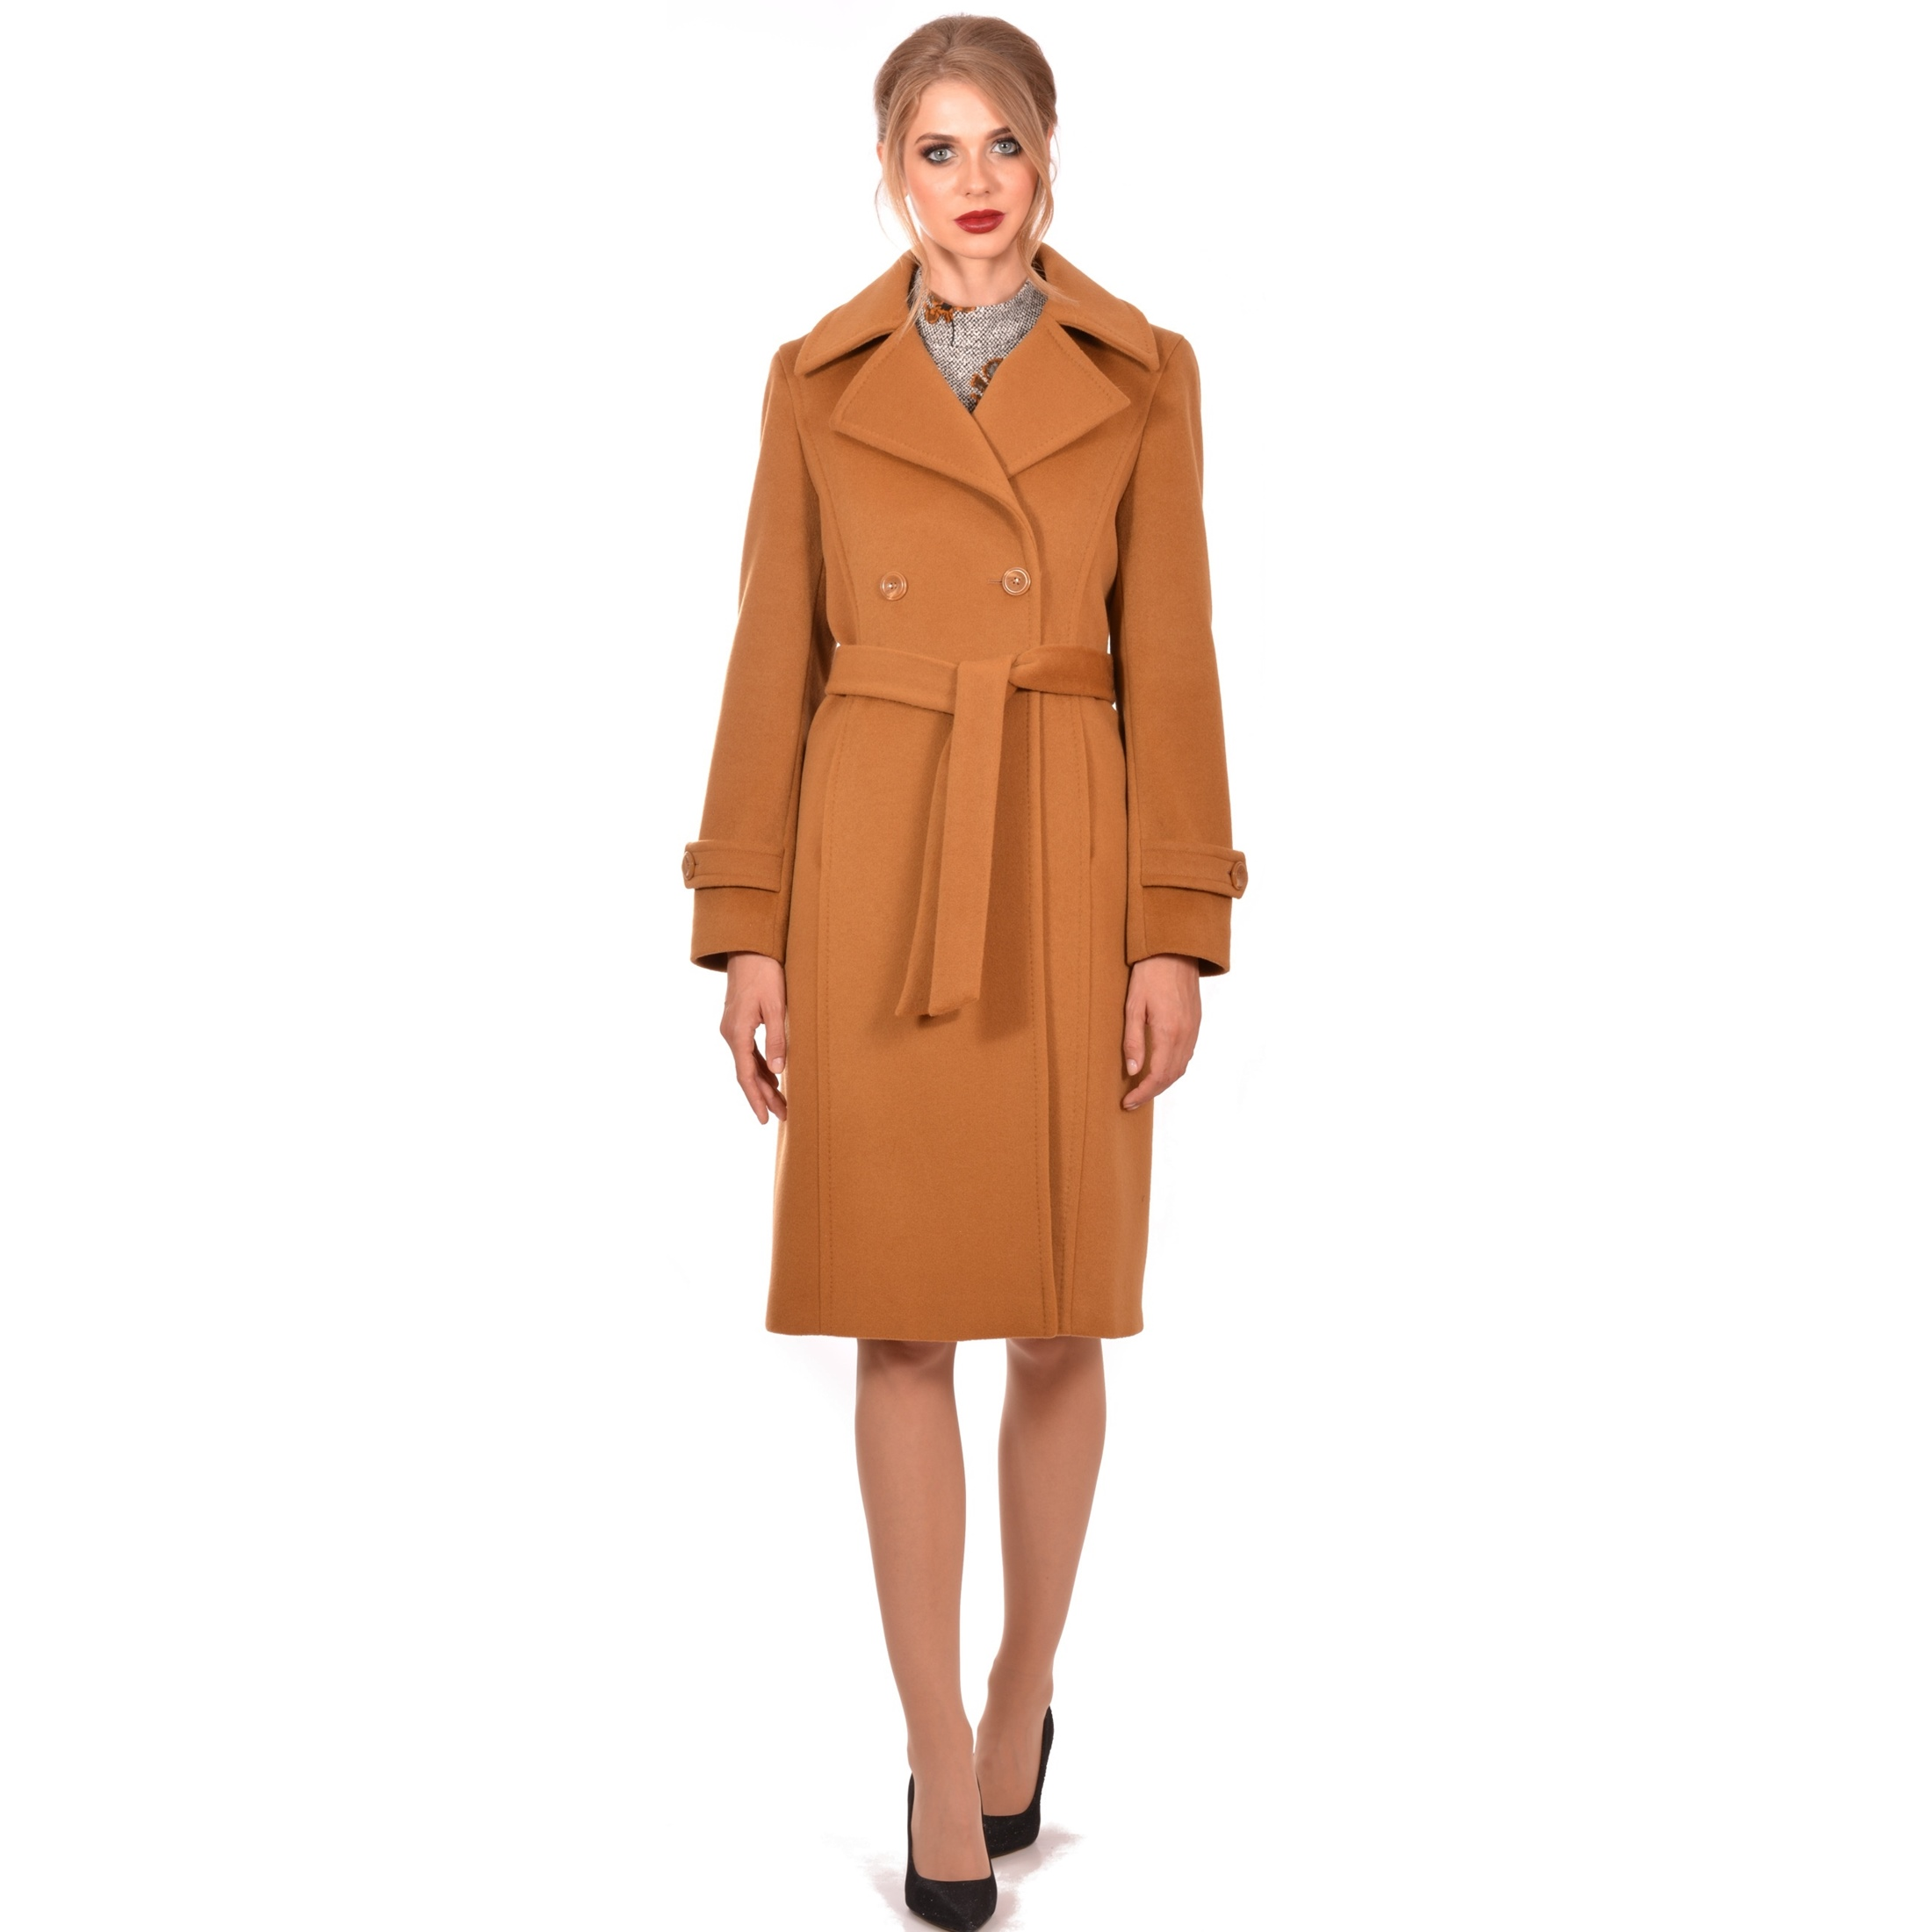 women's camel knee-long coat lady m wool cashmere, ženski kaput lady m do camel do koljena